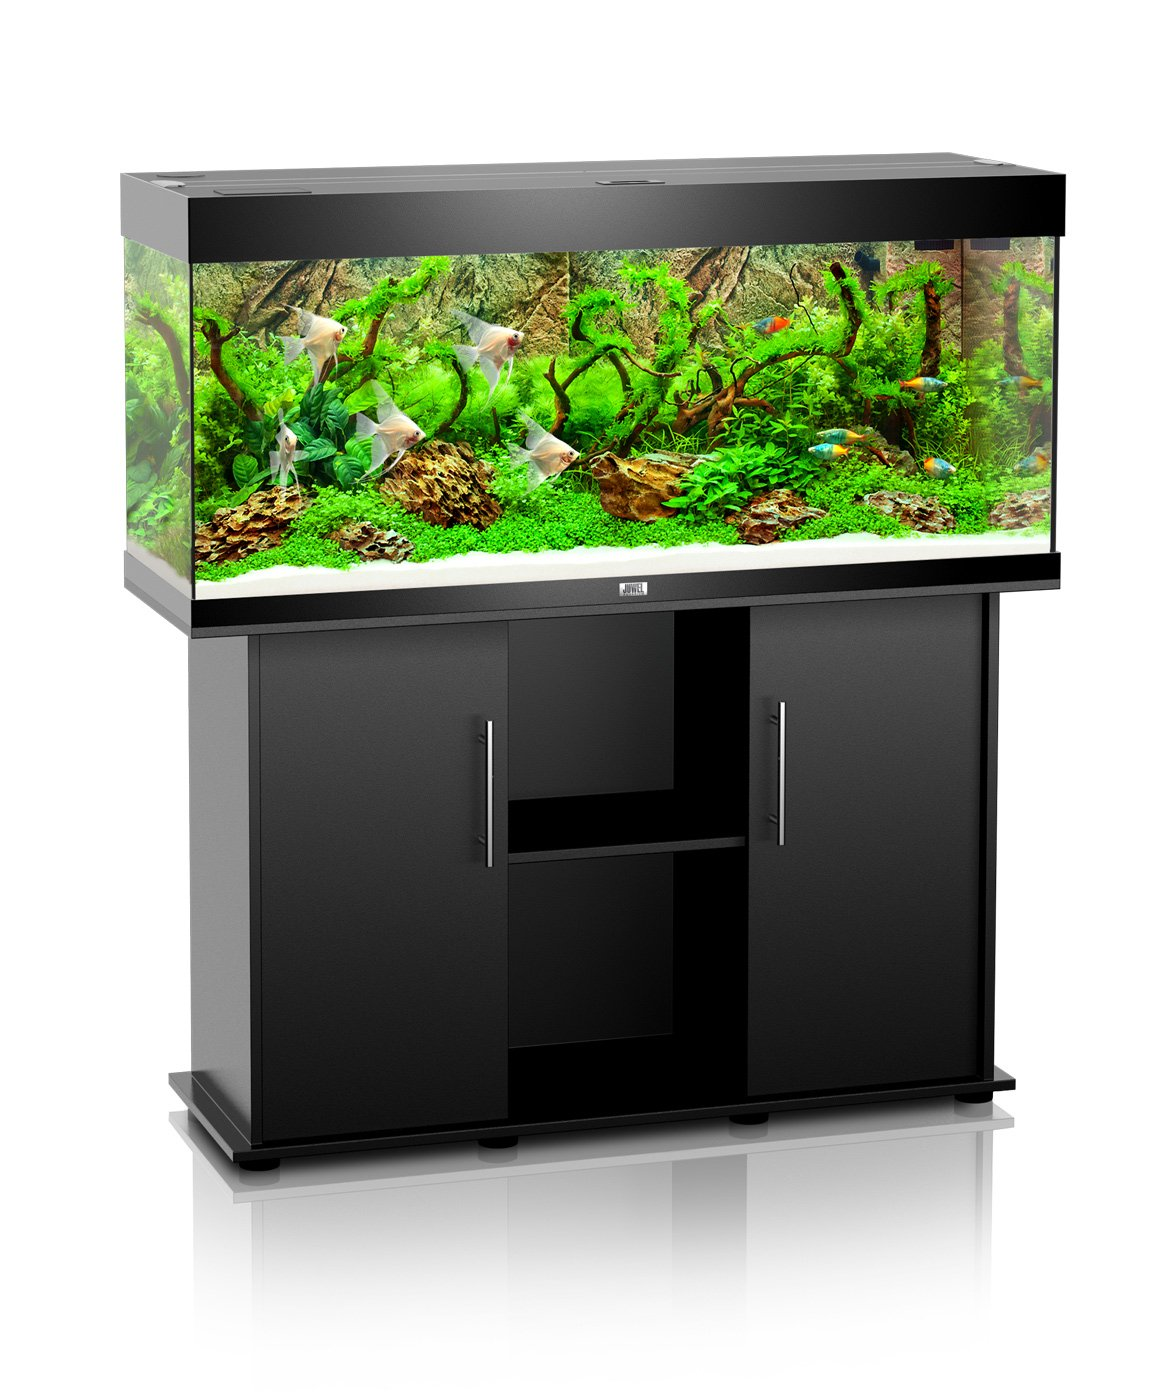 Meuble aquarium 80x30 for Meuble 80x30